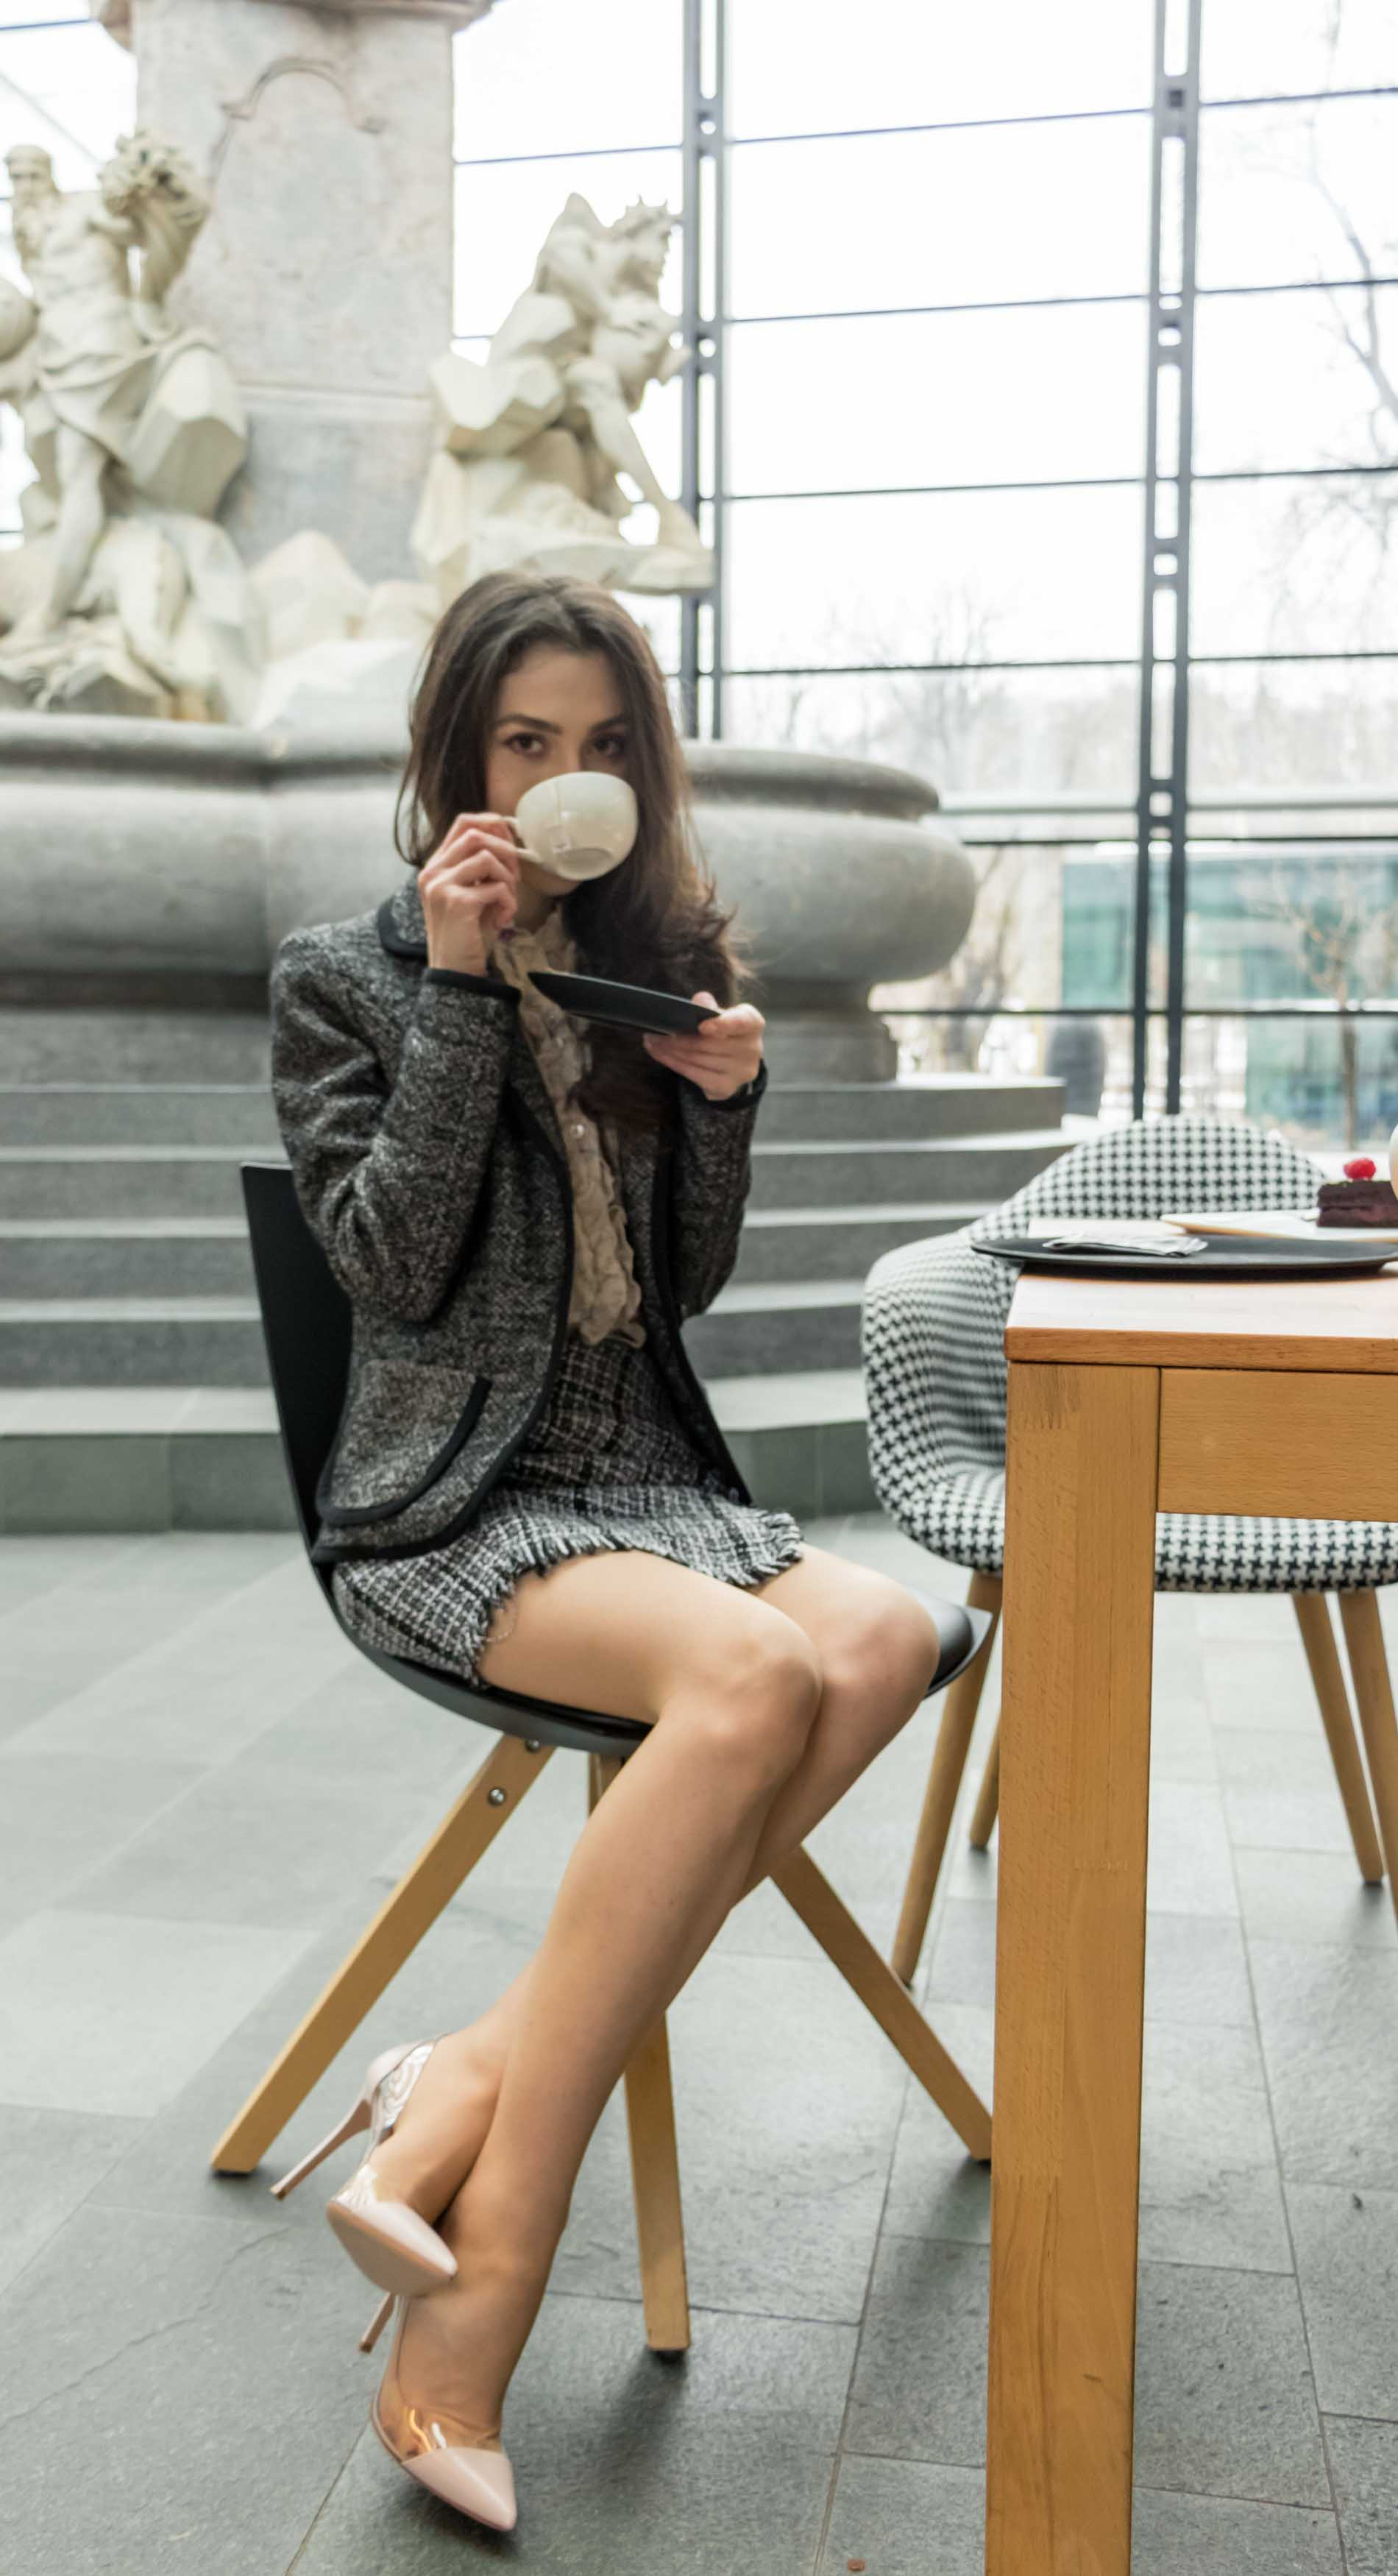 Fashion Blogger Veronika Lipar of Brunette from Wall Street dressed in tweed plaid mini skirt from Storets, black and white Marella tweed jacket, blush Gianvito Rossi Plexi 100 leather and PVC pumps, while drinking coffee